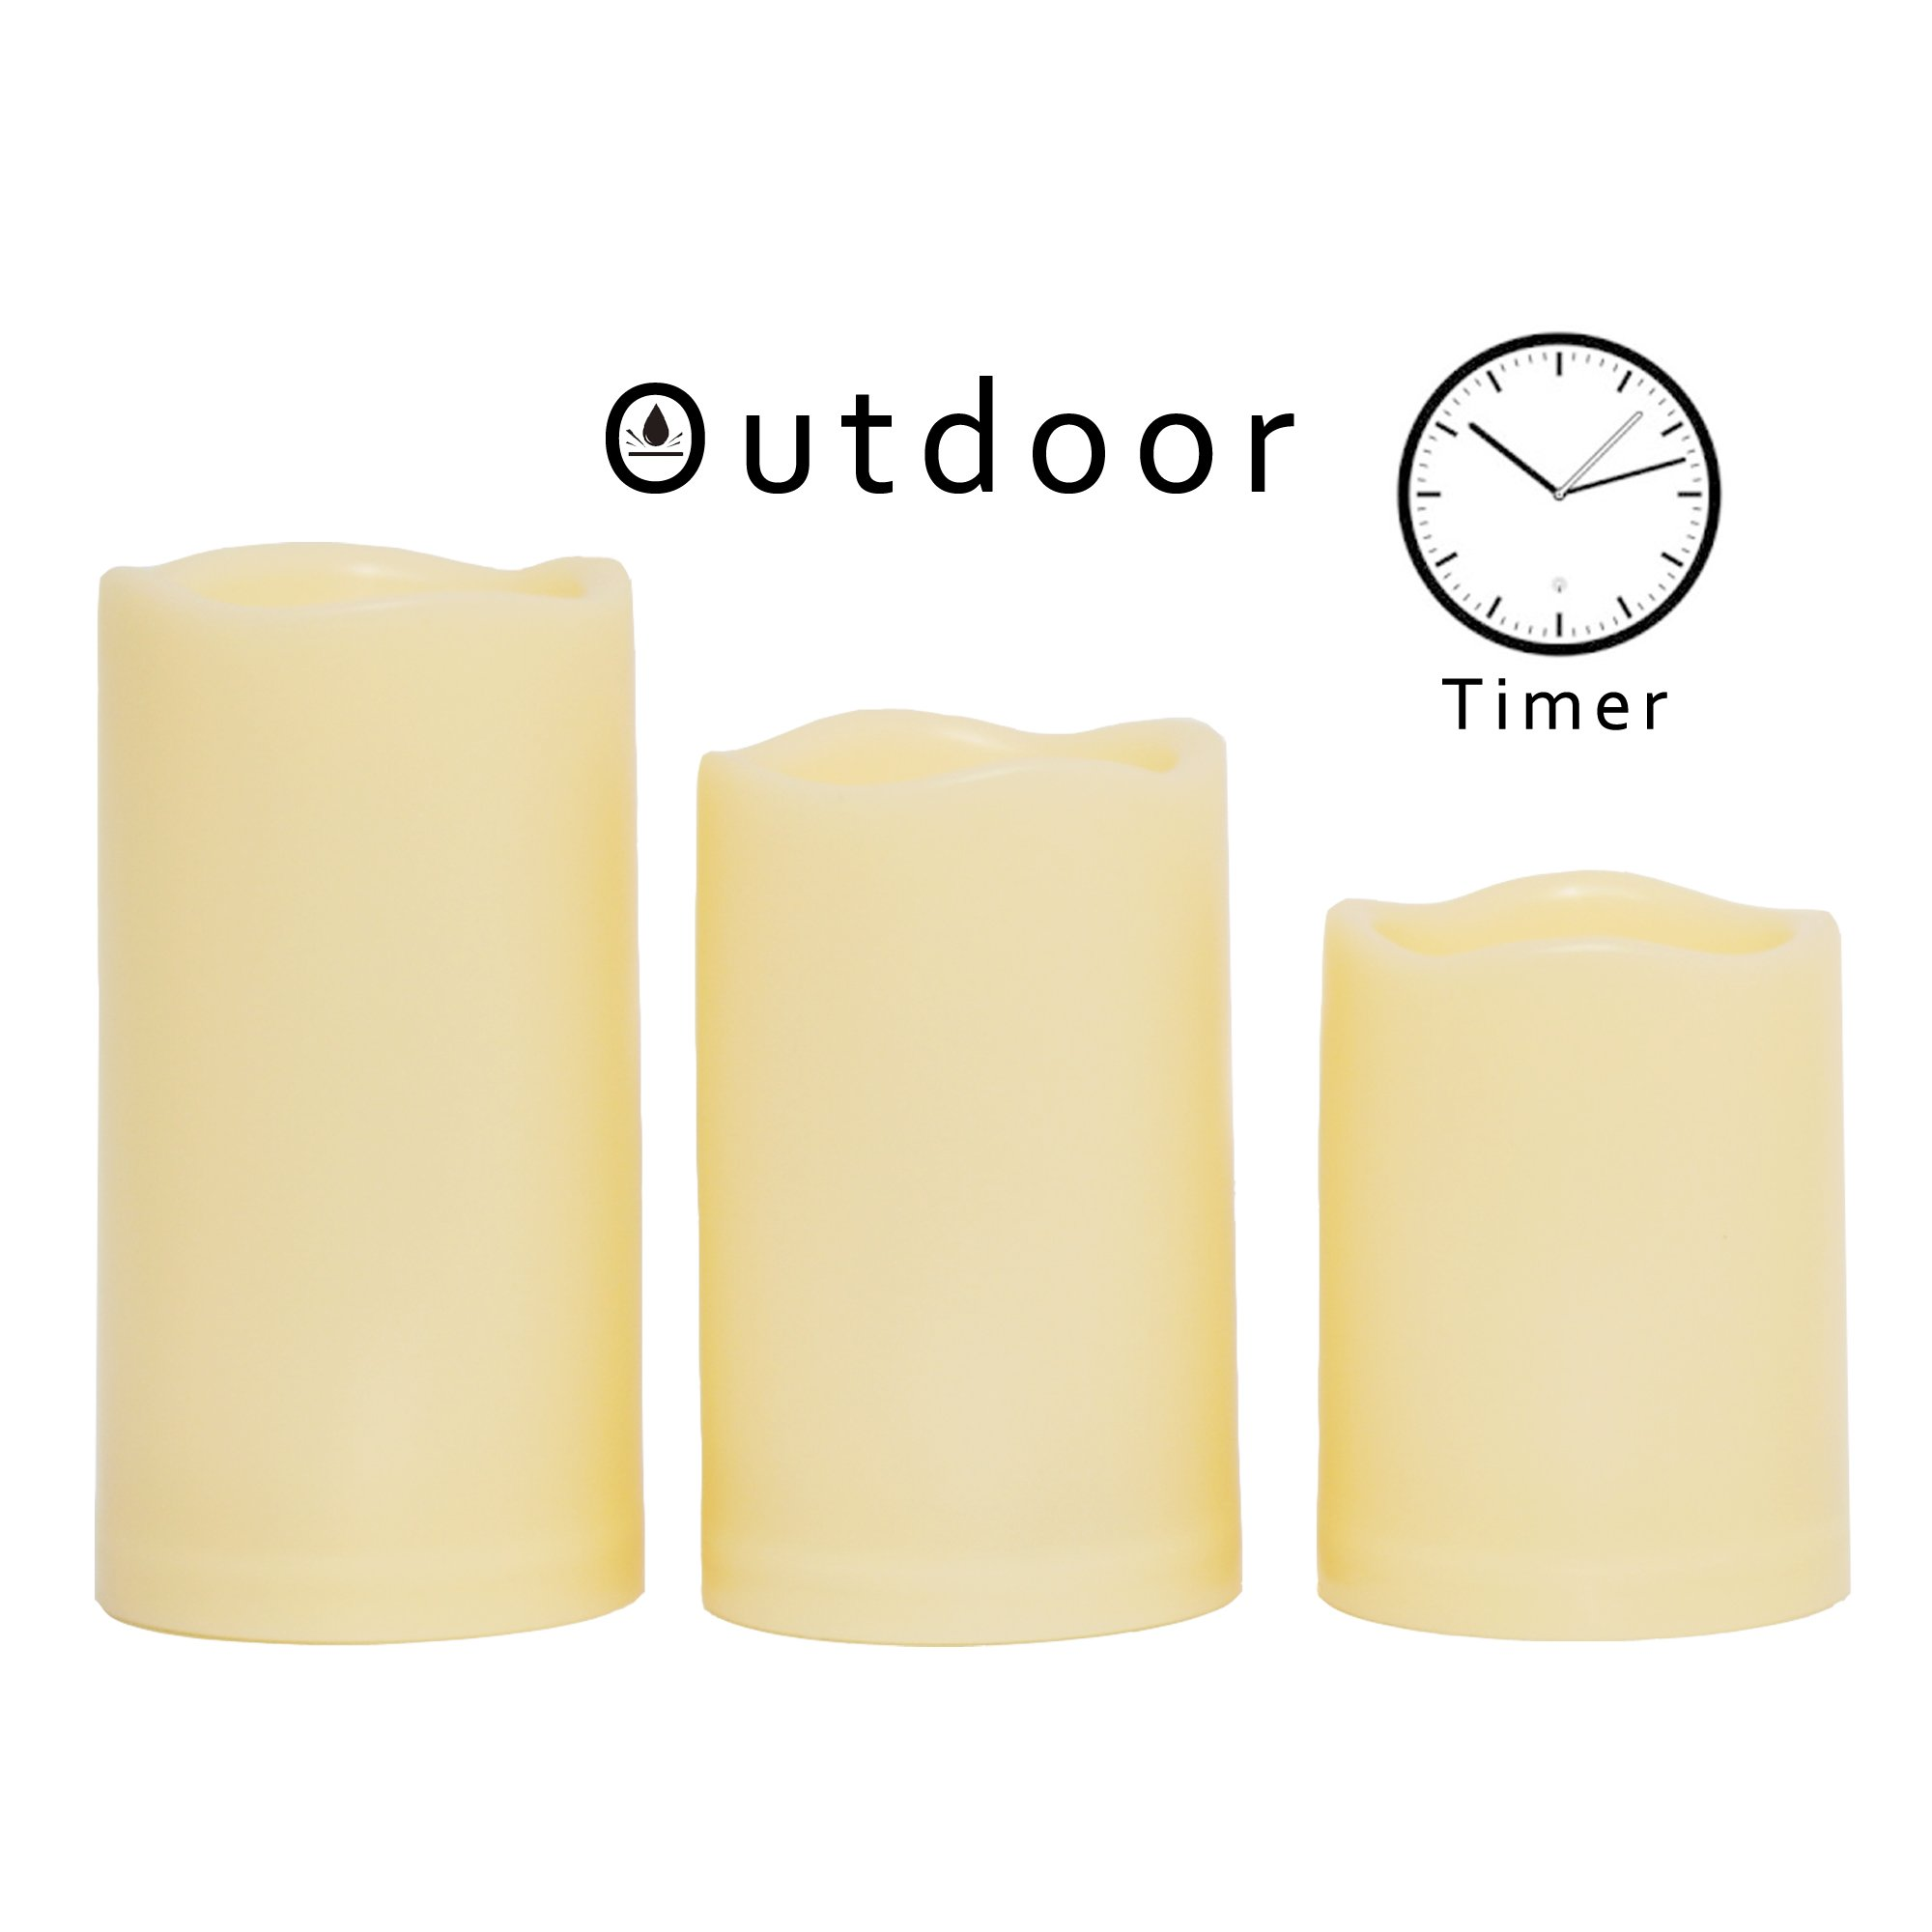 """Candle Choice 3 PCS Outdoor Flameless Candles with Timer, Realistic Flickering LED Pillar Candles, Weatherproof Battery Operated Candles, Long Battery Life 1500+ Hours, Melted Edge 3""""x4"""", 5"""", 6"""" by CANDLE CHOICE"""